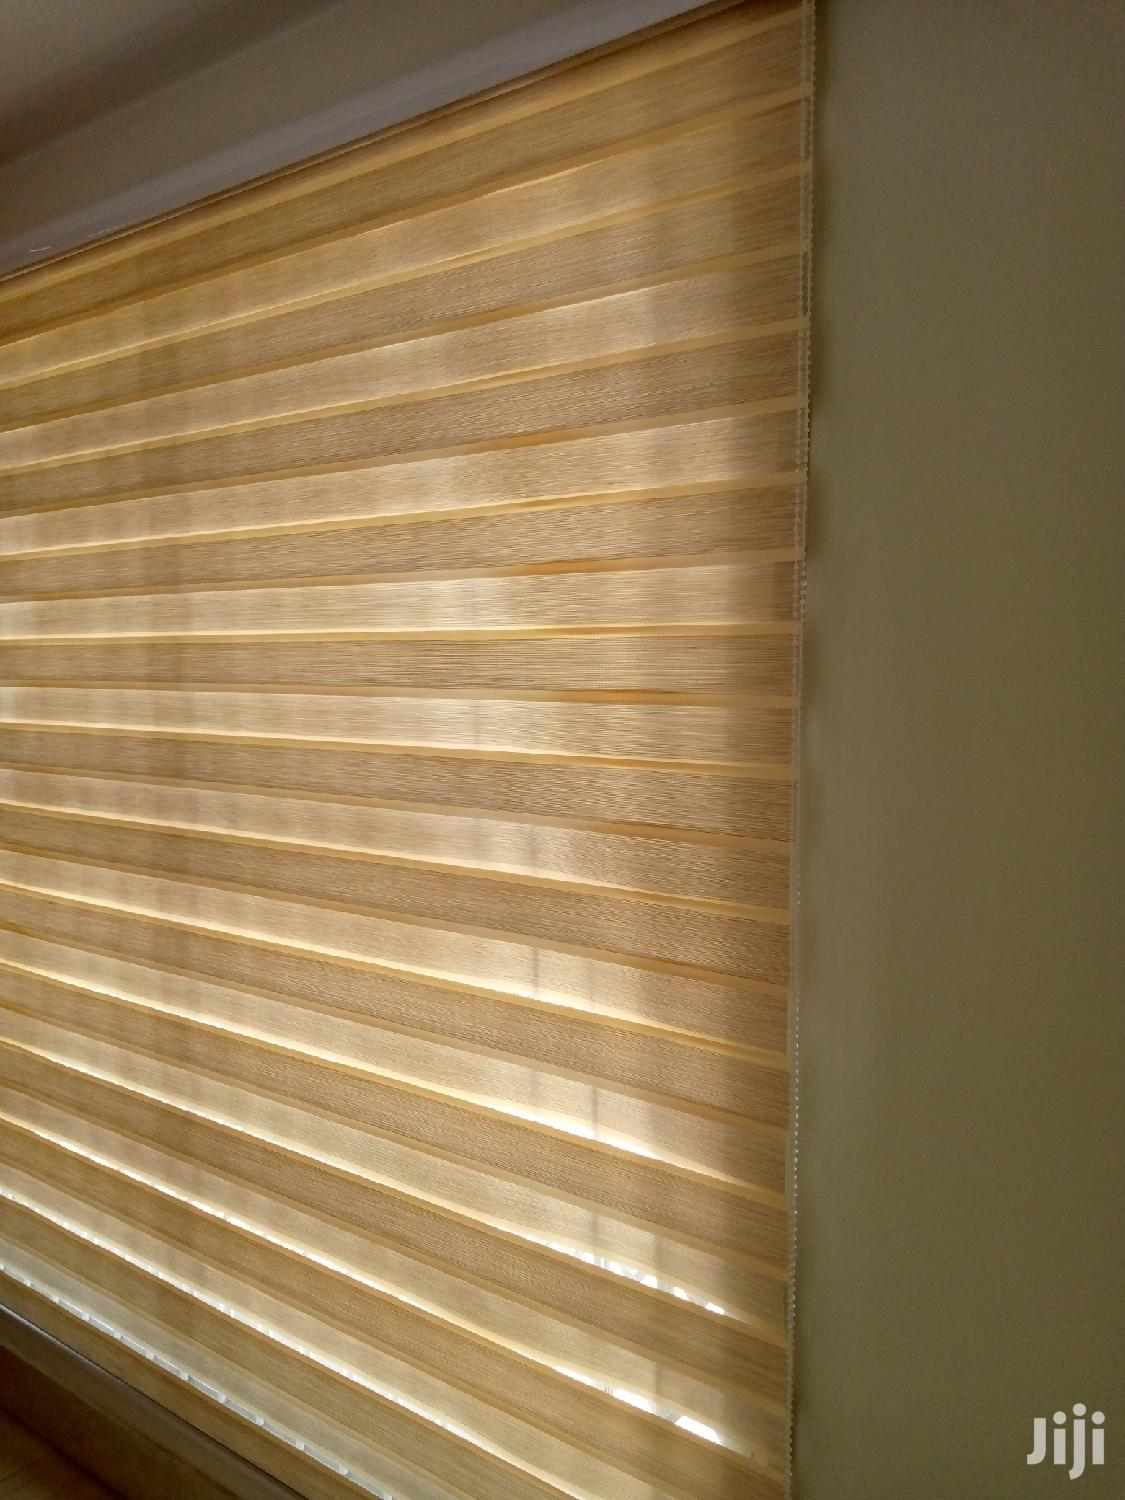 Classy Zebra Blinds | Home Accessories for sale in Roman Ridge, Greater Accra, Ghana